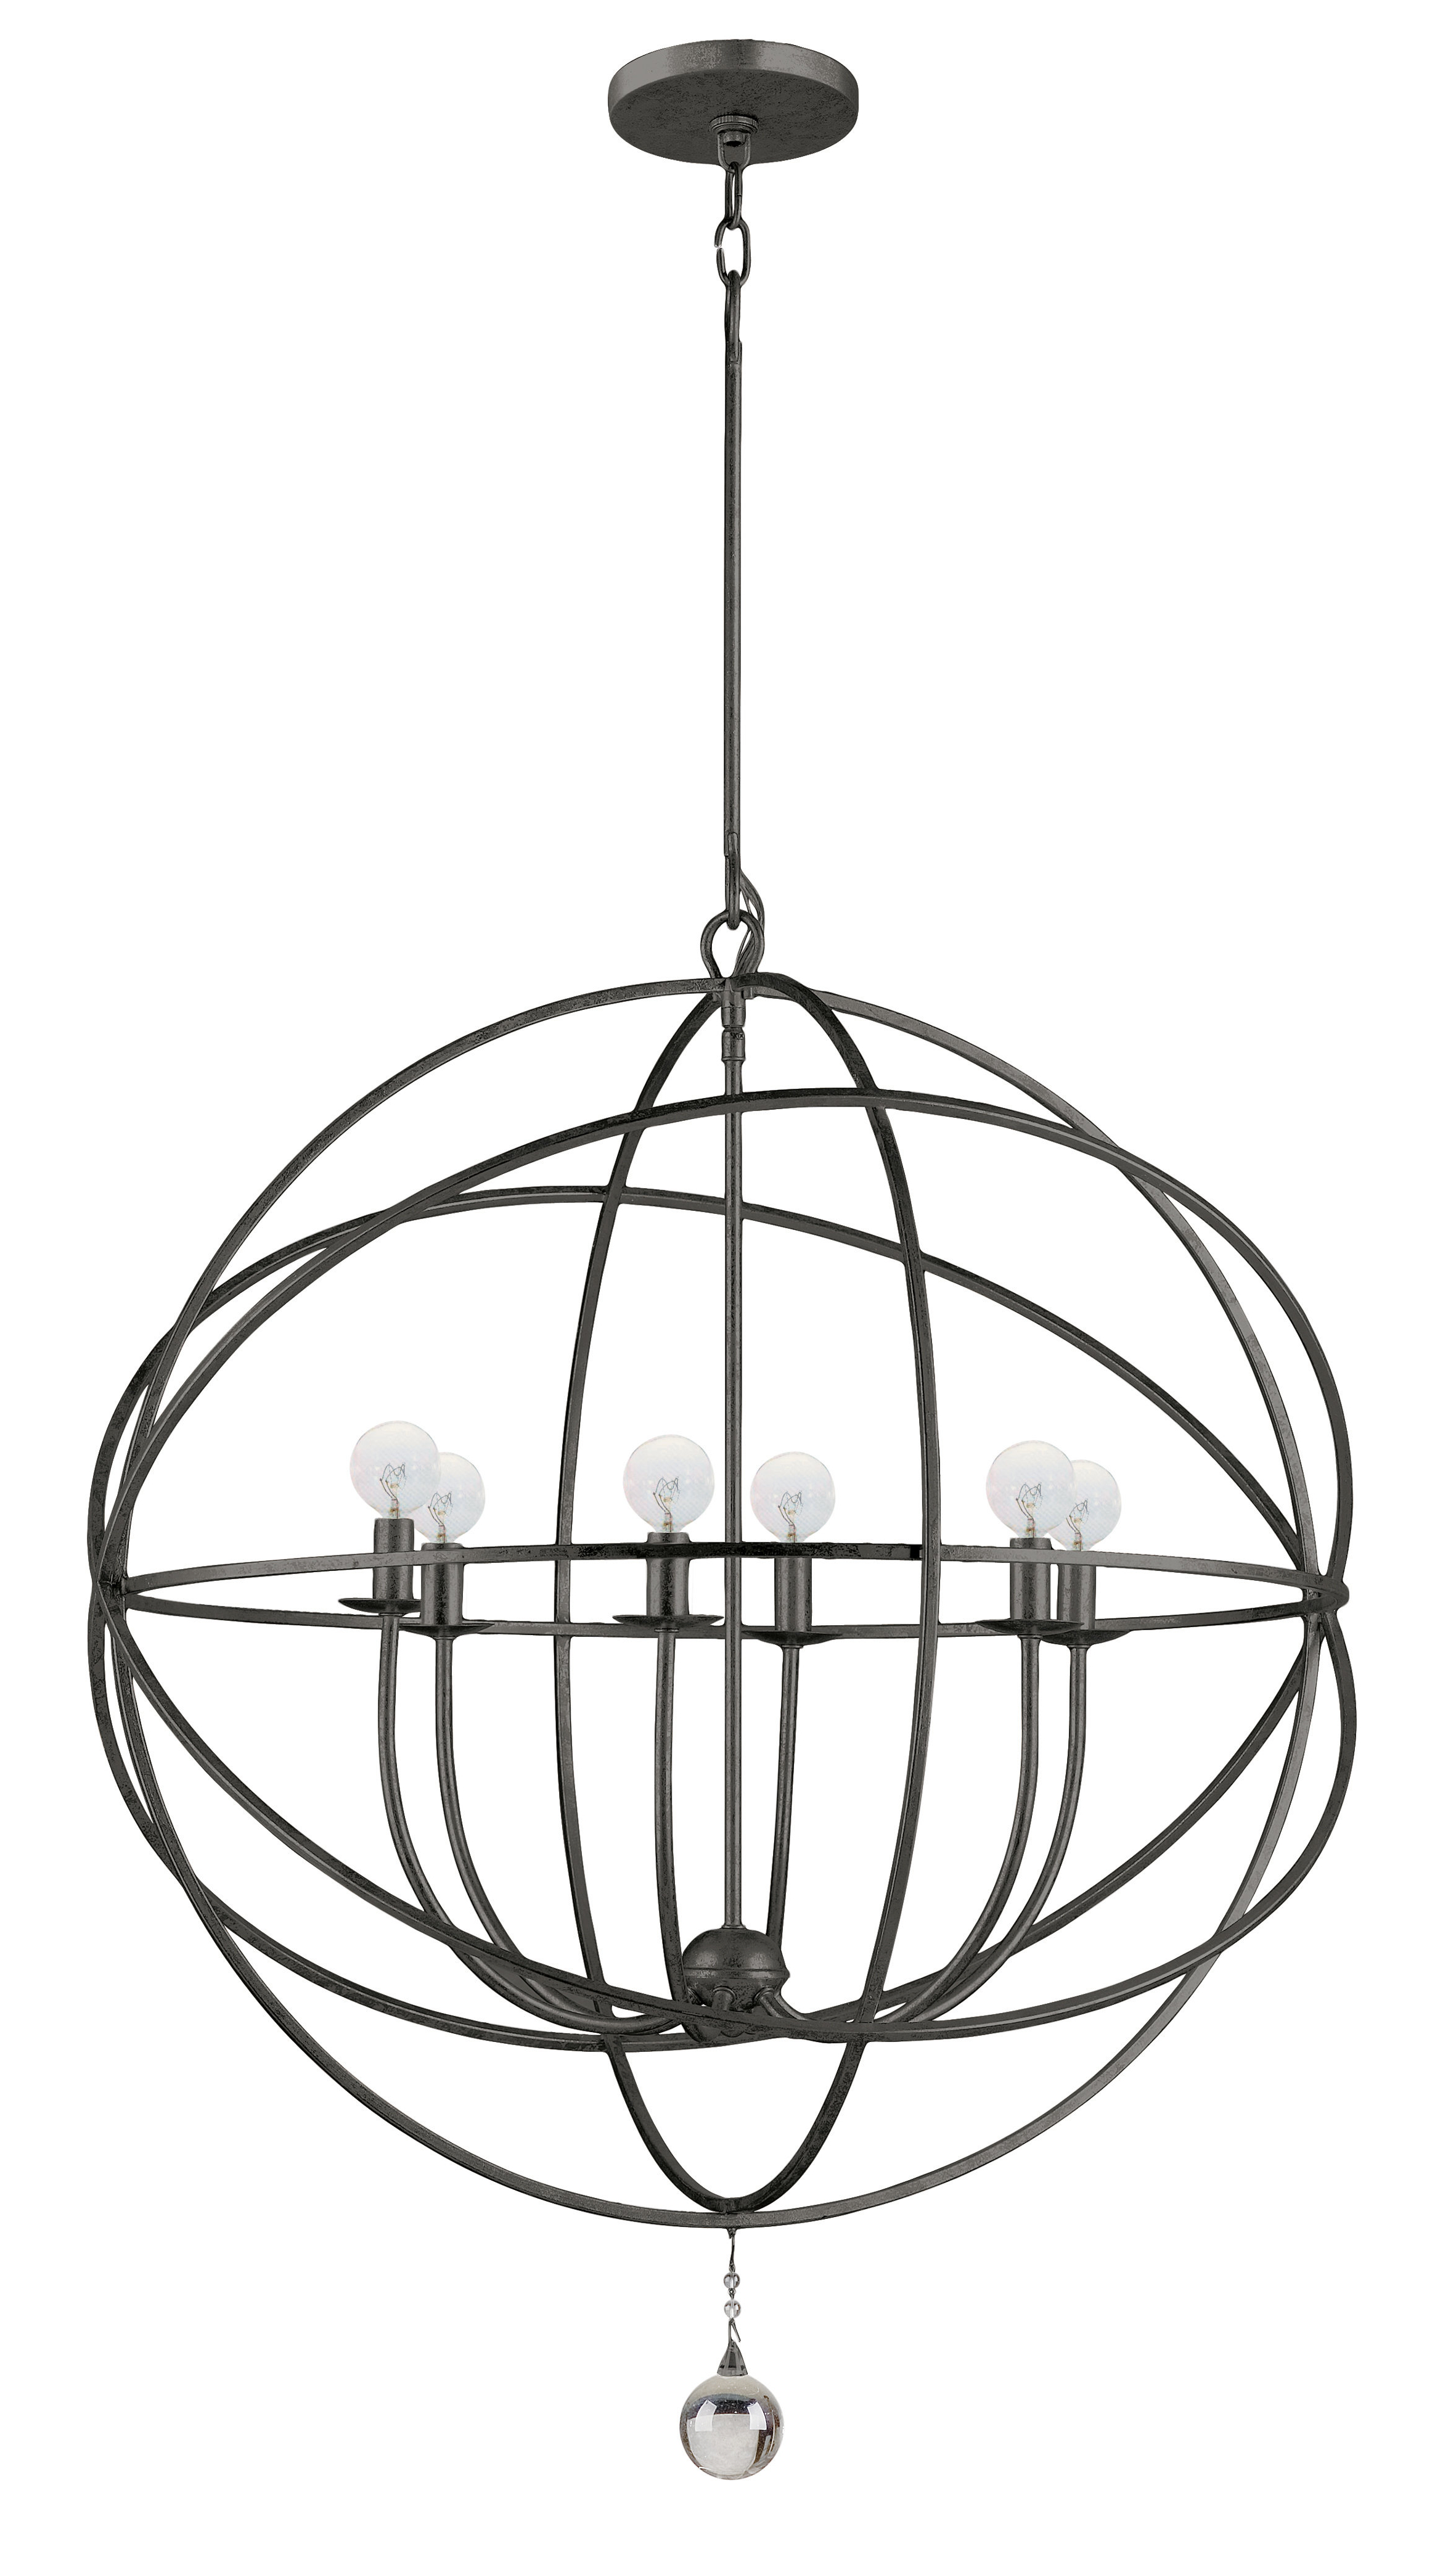 Best And Newest Gregoire 6 Light Globe Chandelier With Regard To Alden 6 Light Globe Chandeliers (View 22 of 25)